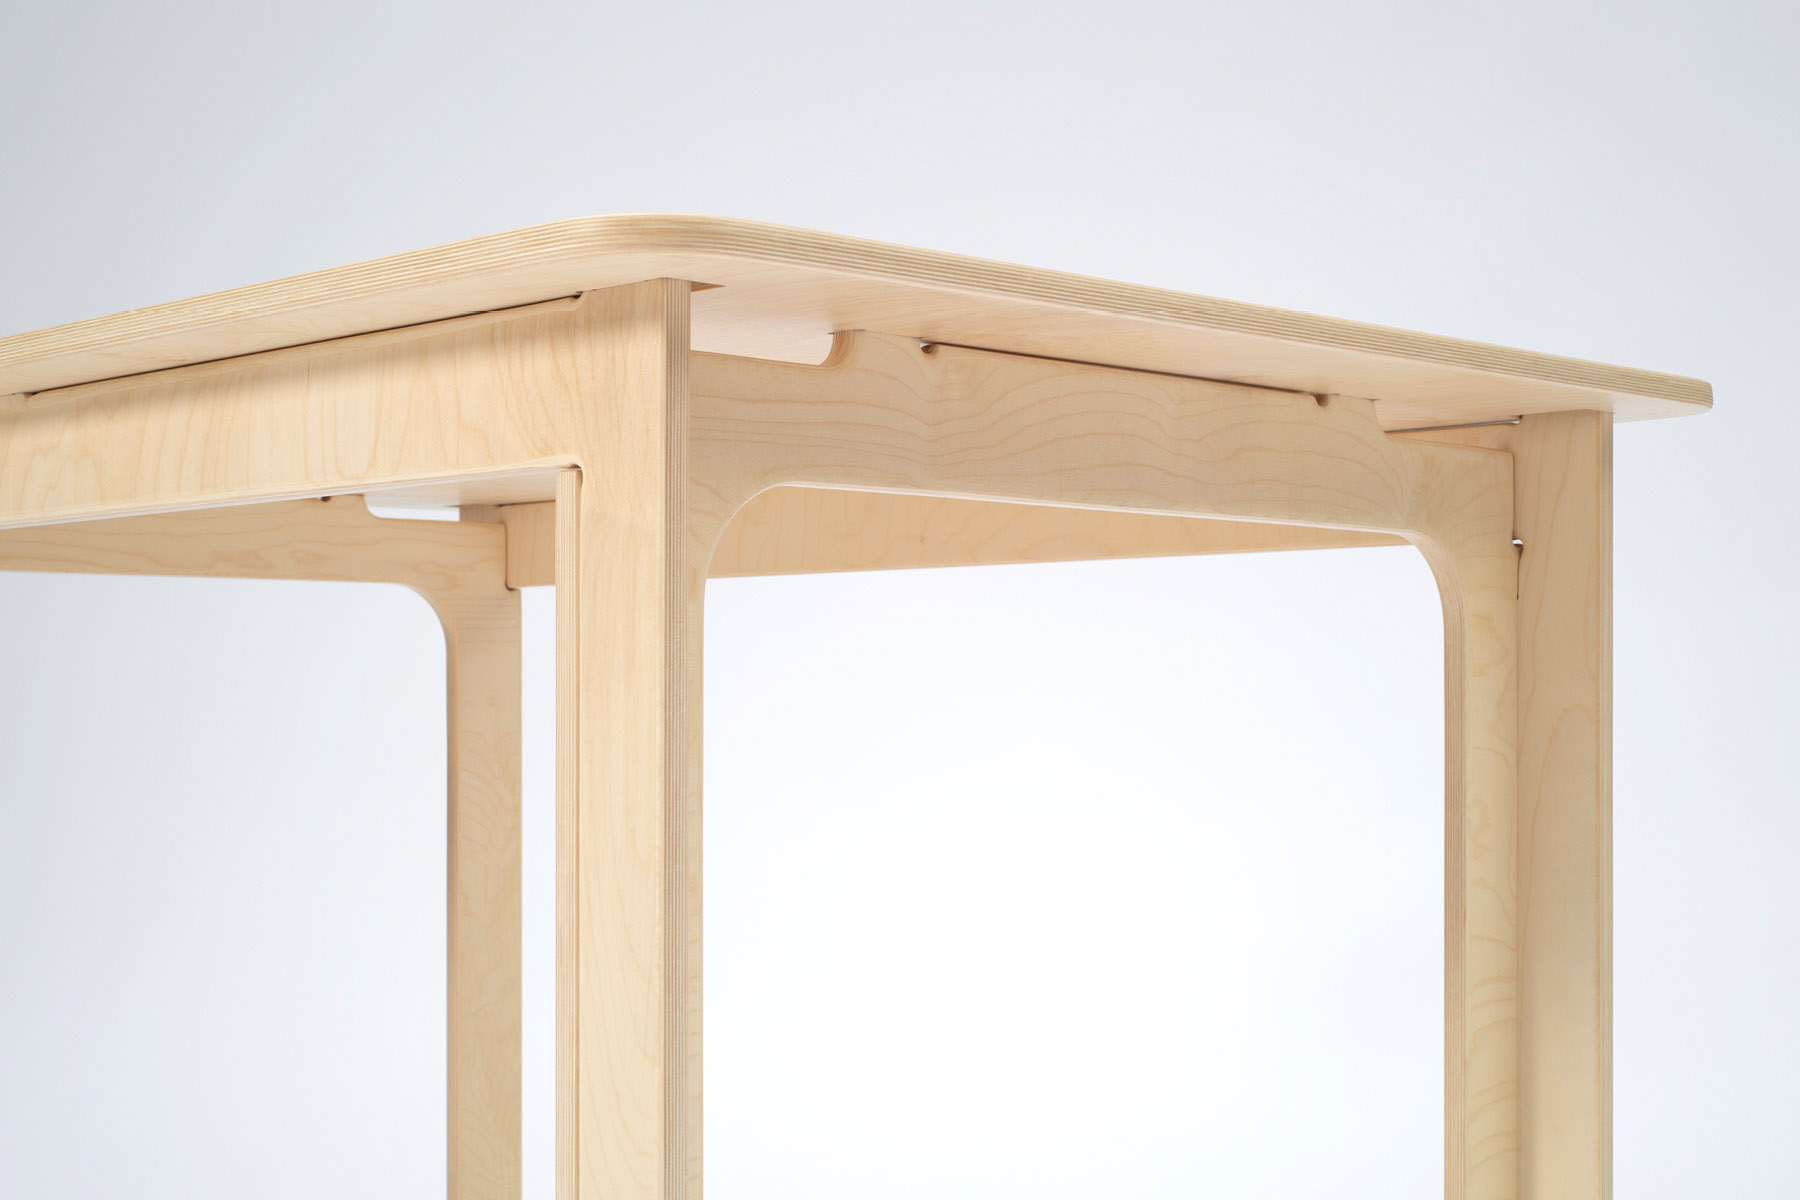 Maple table leg detail